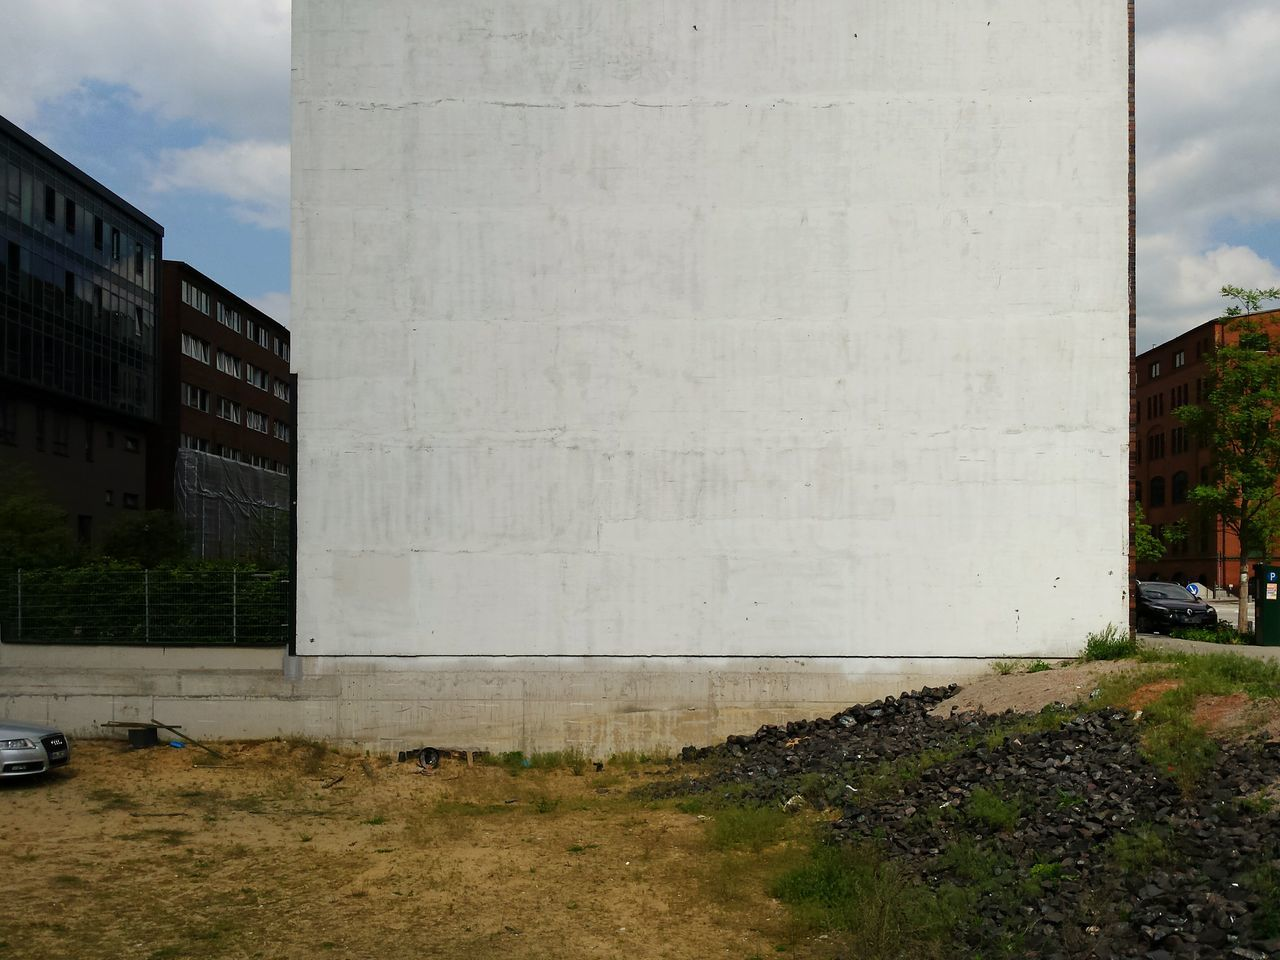 architecture, built structure, day, outdoors, building exterior, road, no people, sky